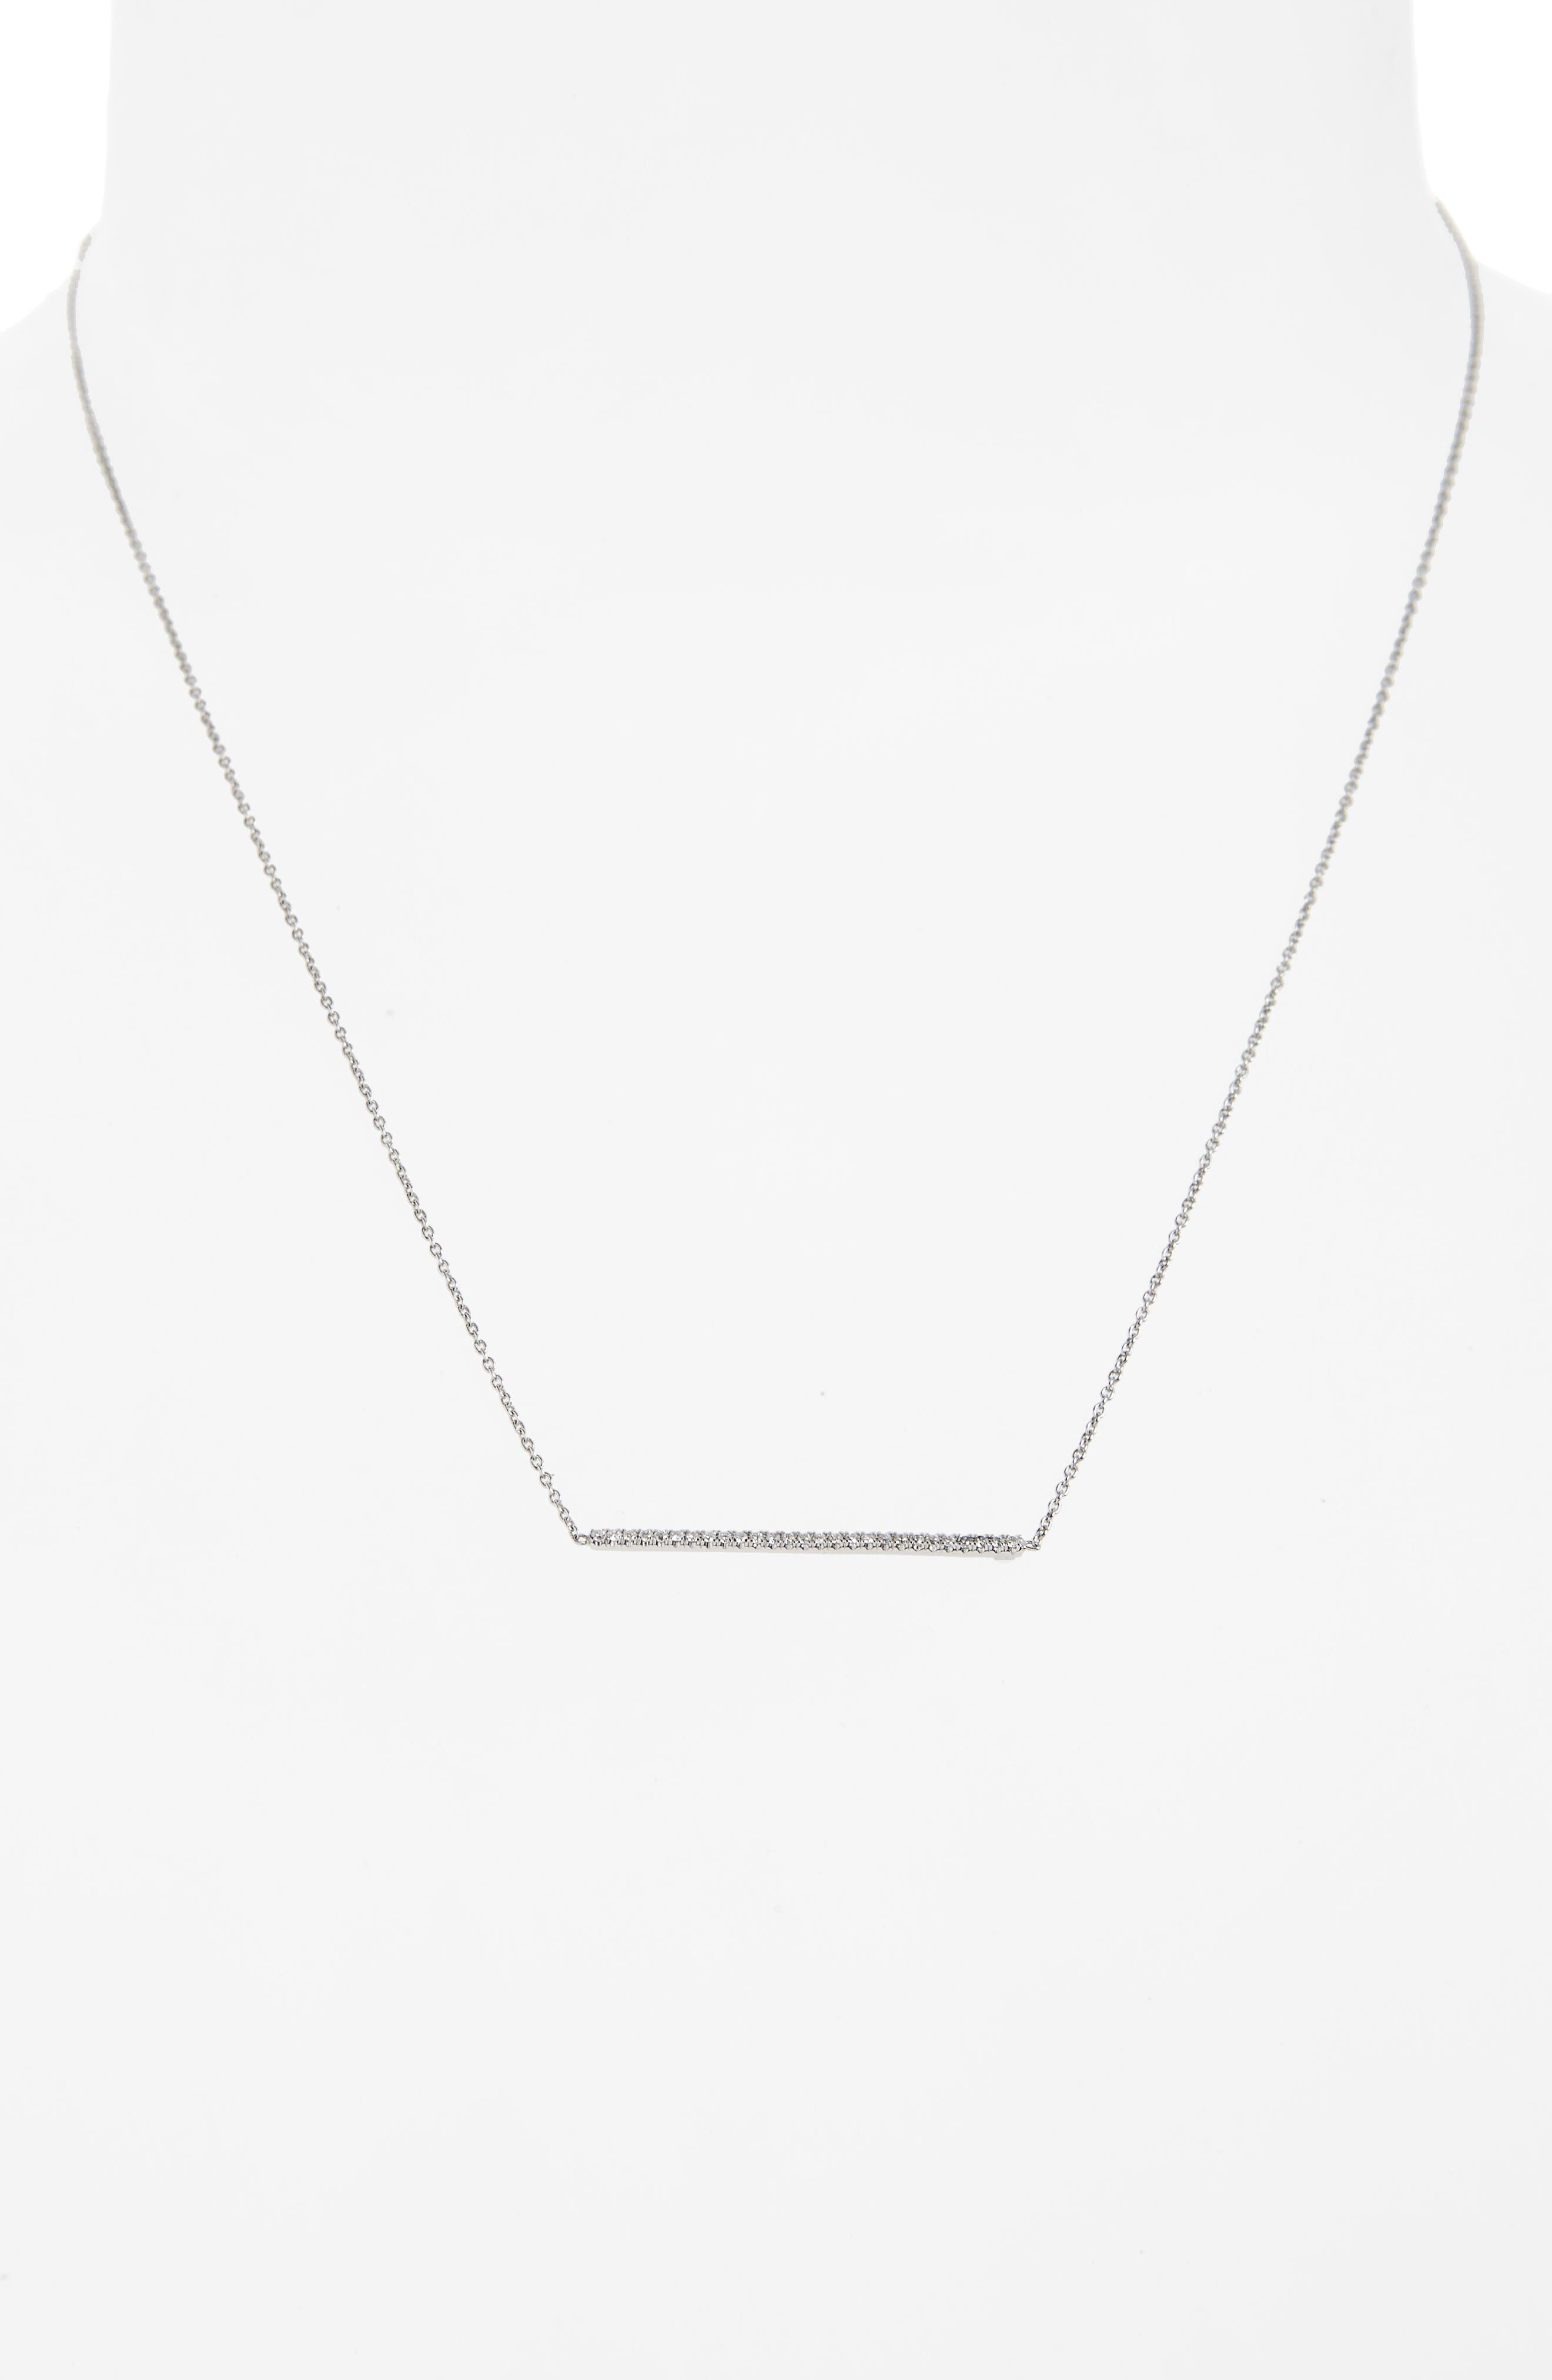 Tiny Treasures Diamond Bar Necklace,                             Alternate thumbnail 2, color,                             White Gold